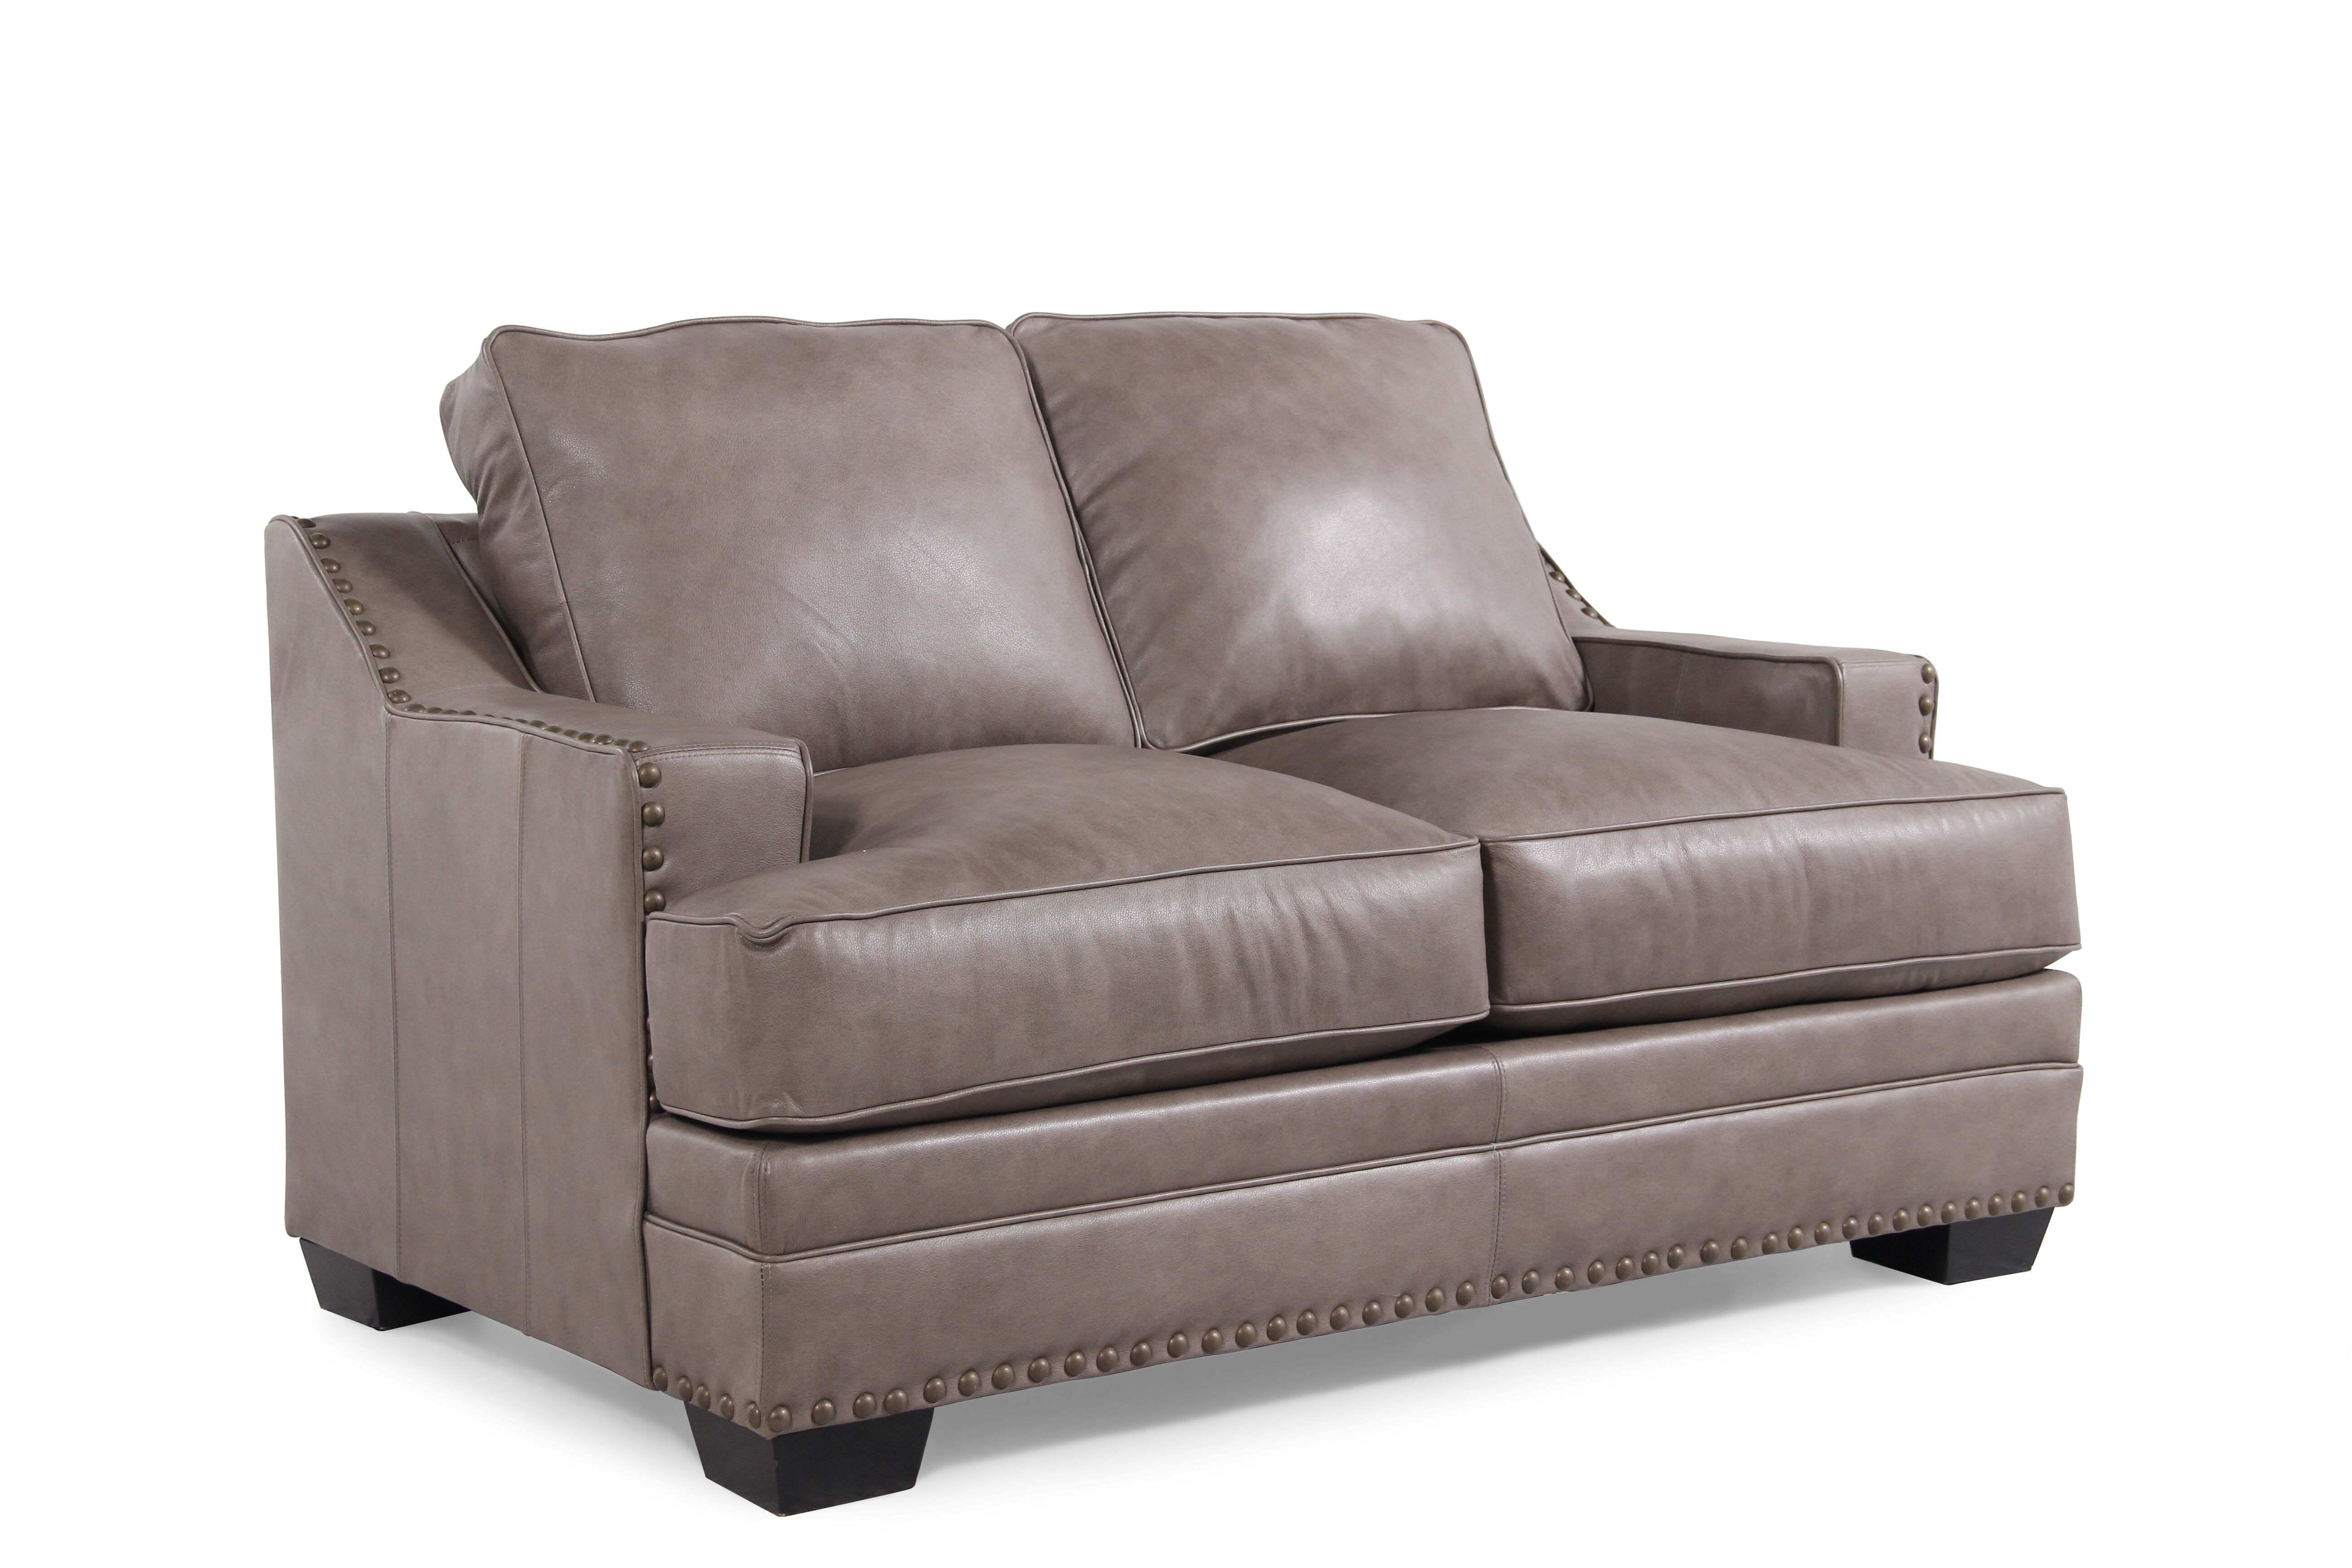 low profile leather sectional sofa drawing 61 quot loveseat in chestnut brown